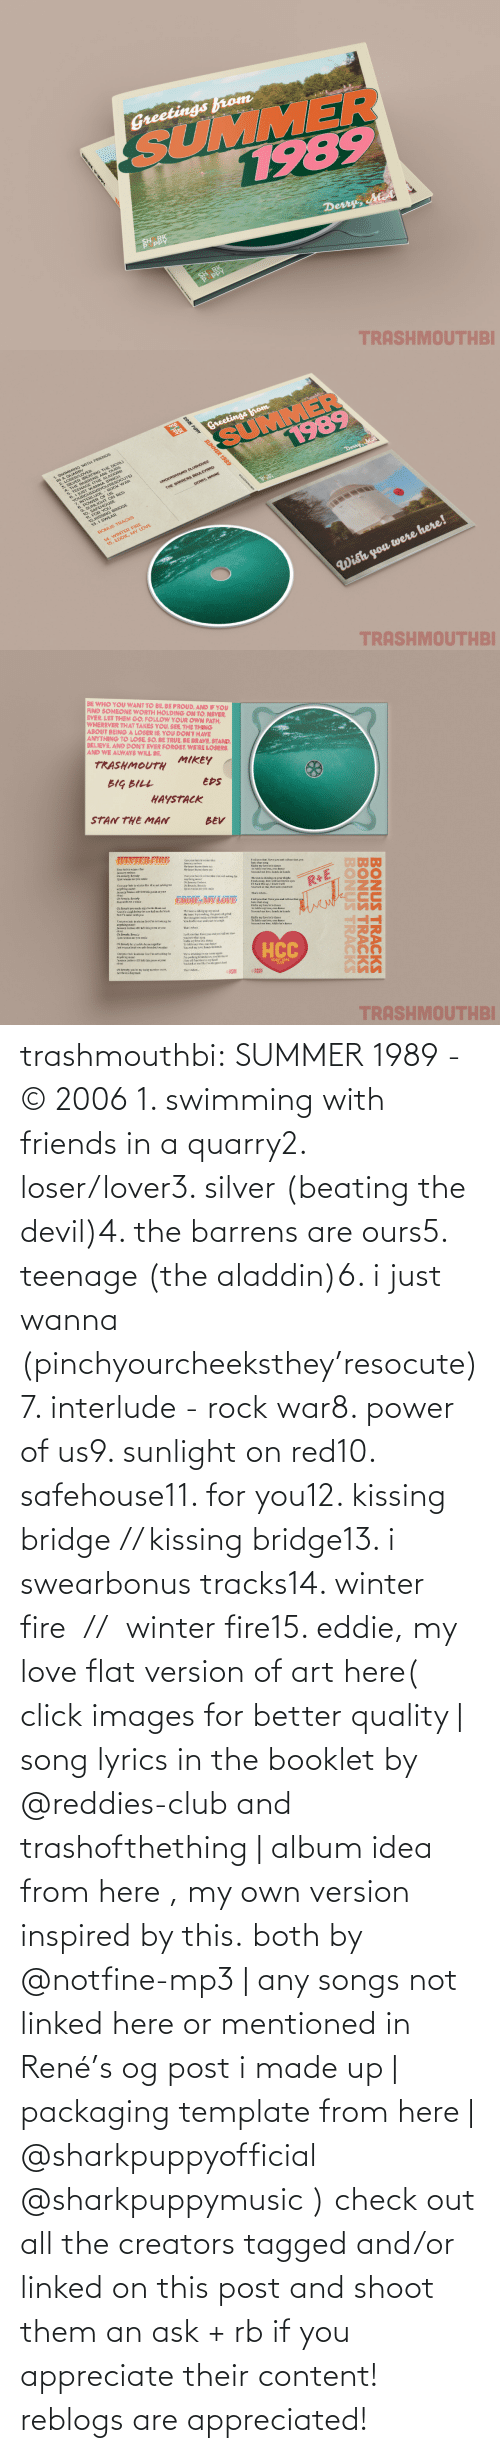 Infamous: trashmouthbi: SUMMER 1989 - © 2006 1. swimming with friends in a quarry2. loser/lover3. silver (beating the devil)4. the barrens are ours5. teenage (the aladdin)6. i just wanna (pinchyourcheeksthey'resocute)7. interlude - rock war8. power of us9. sunlight on red10. safehouse11. for you12. kissing bridge // kissing bridge13. i swearbonus tracks14. winter fire  //  winter fire15. eddie, my love flat version of art here( click images for better quality | song lyrics in the booklet by @reddies-club​ and trashofthething | album idea from here , my own version inspired by this. both by @notfine-mp3​ | any songs not linked here or mentioned in René's og post i made up | packaging template from here | @sharkpuppyofficial​ @sharkpuppymusic​ ) check out all the creators tagged and/or linked on this post and shoot them an ask + rb if you appreciate their content! reblogs are appreciated!